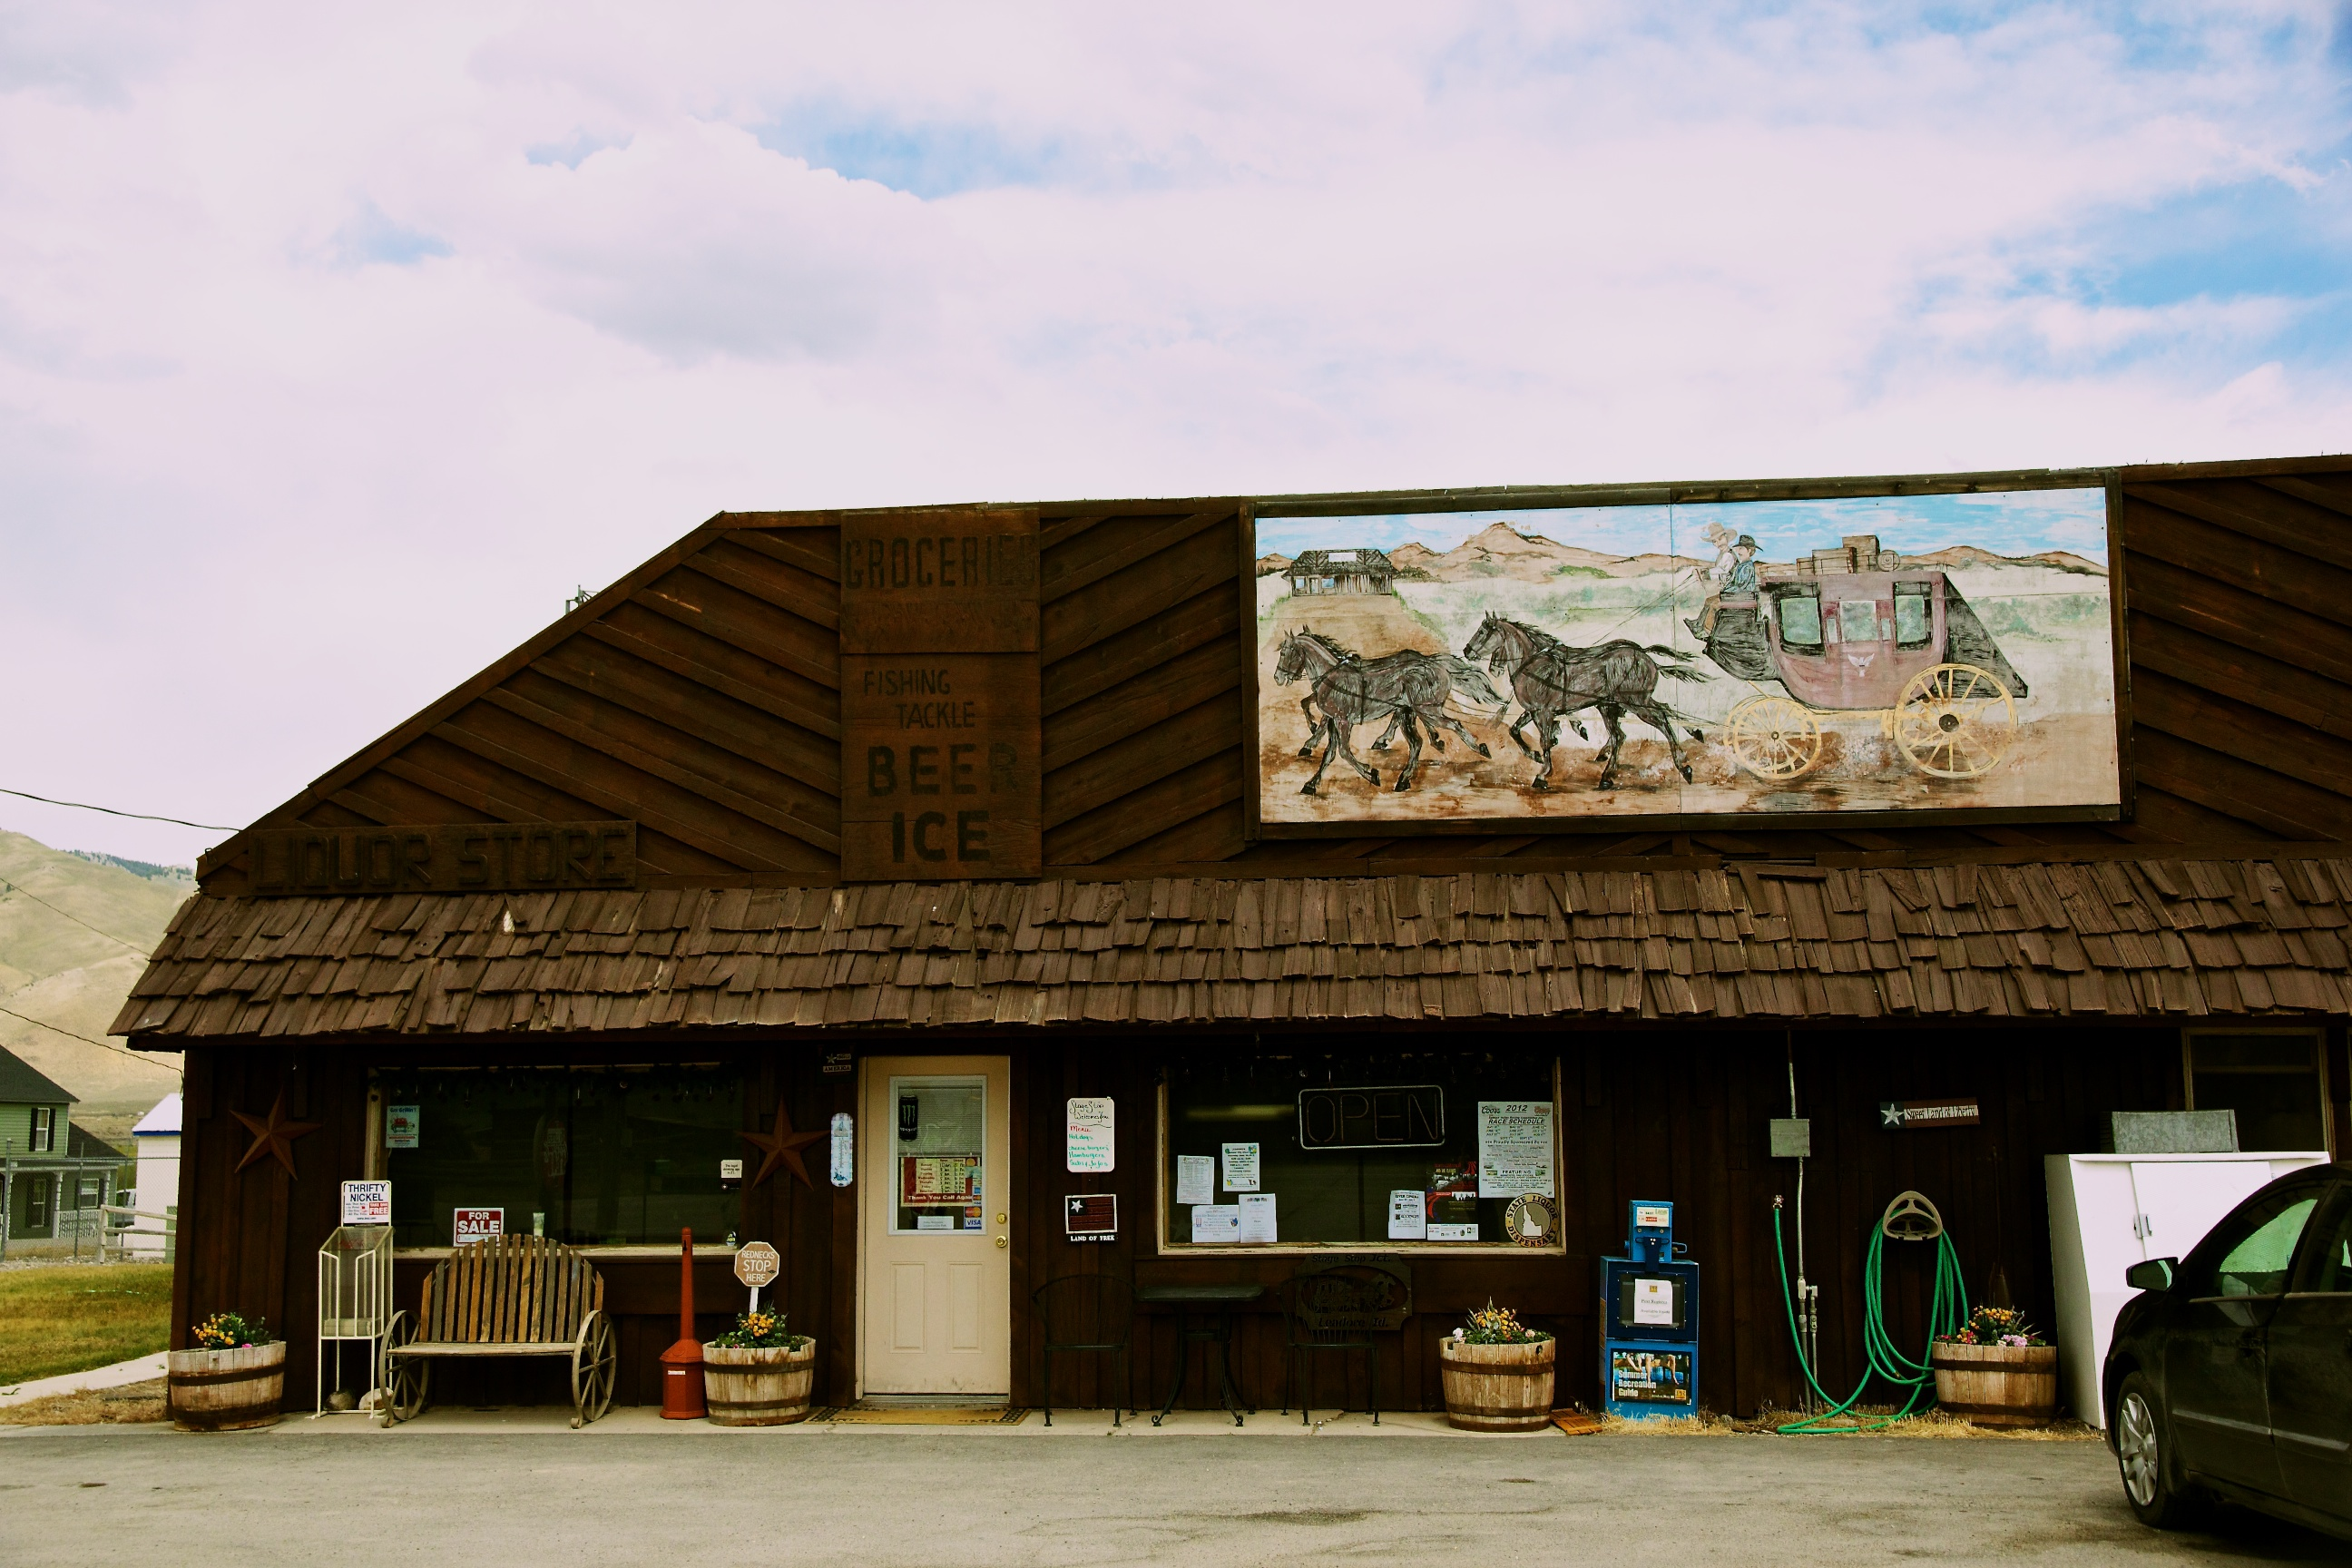 Day 6: Idaho Falls, ID to Missoula, MT – By the Seat of My Pants